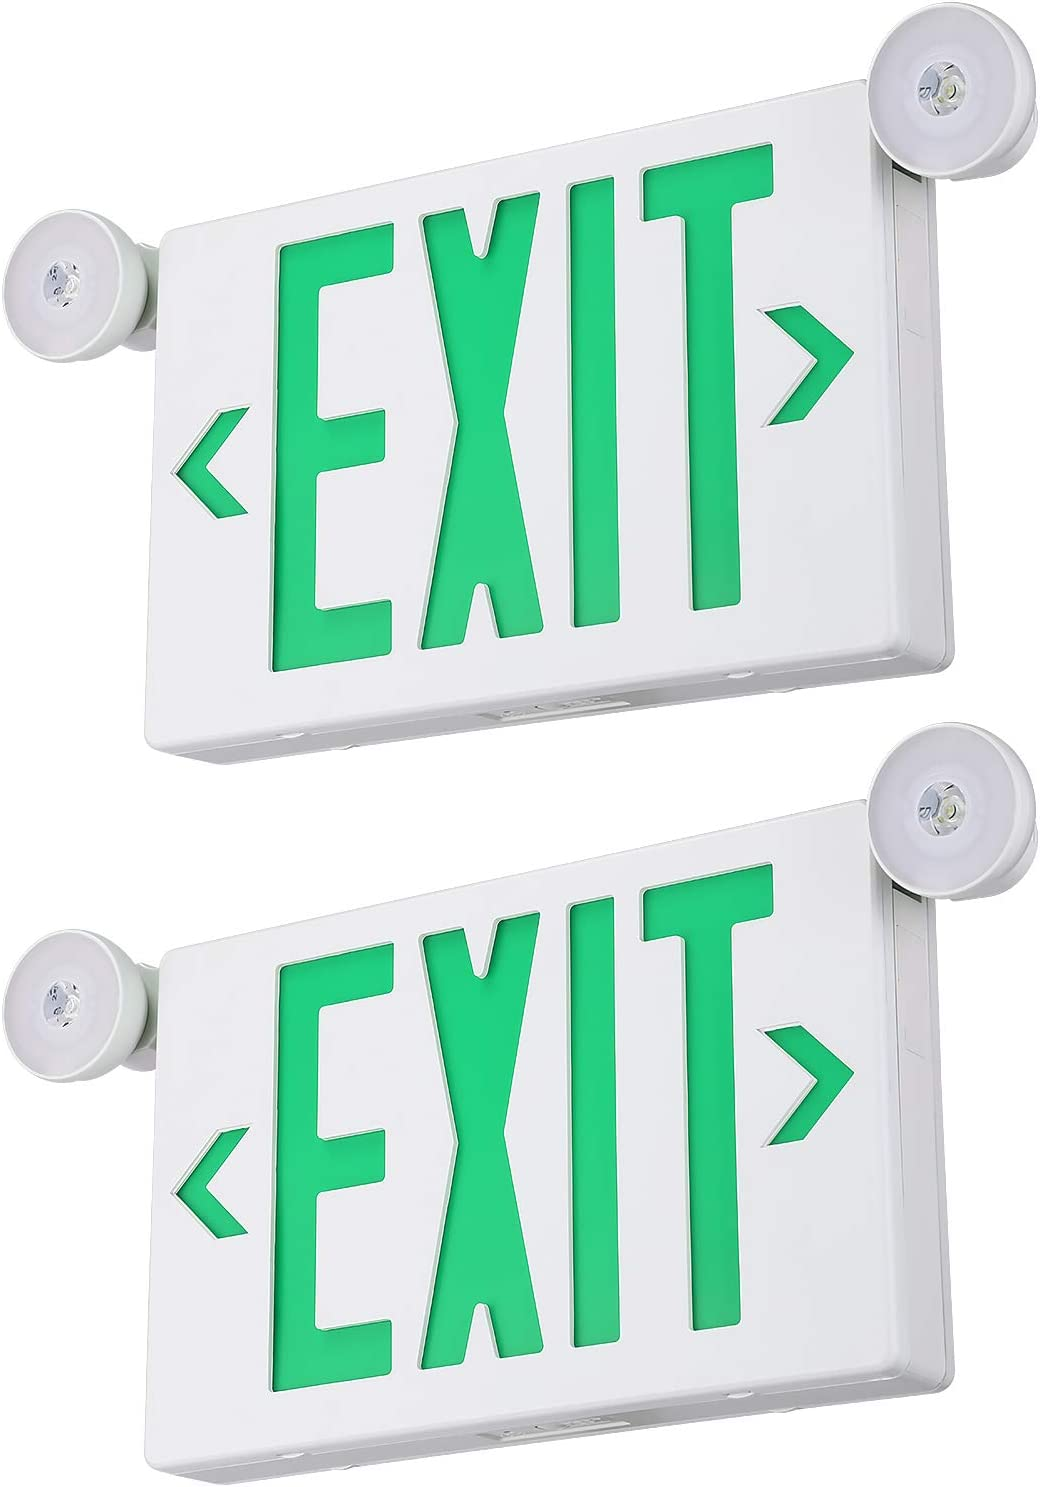 TORCHSTAR Green LED Exit Sign with Emergency Lights, Two LED Adjustable Head Emergency Exit Light with Backup Battery, AC 120V/277V, UL Listed, Exit Sign for Business, Pack of 2